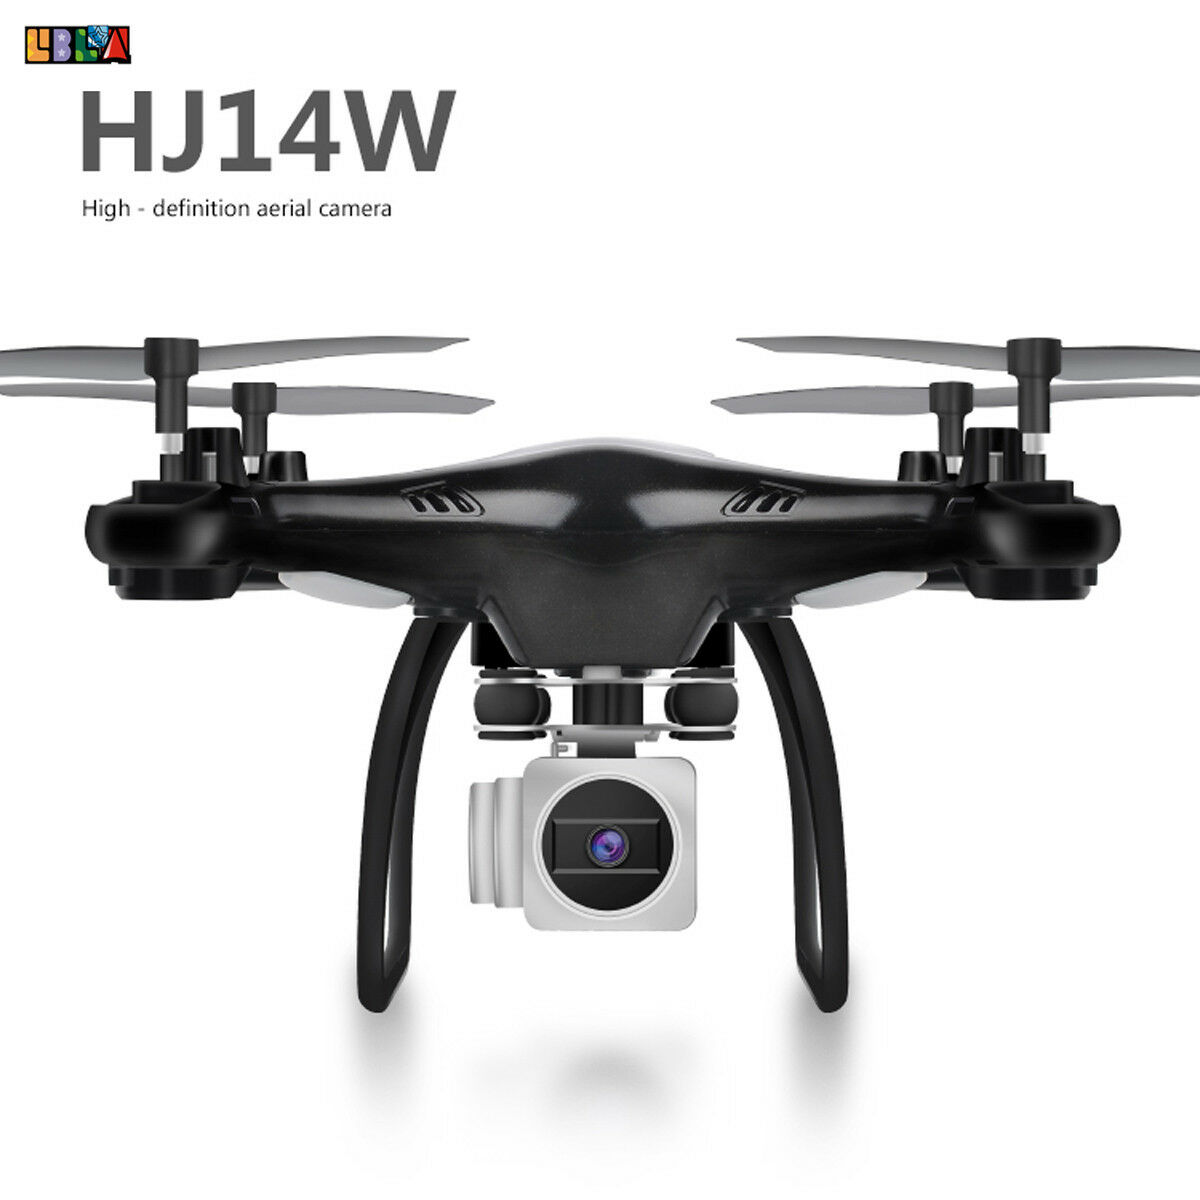 HJ14W Wide Angle Lens HD Camera Drone RC 2.4GHz Drone WiFi 2MP Six Axis Gyro HOT